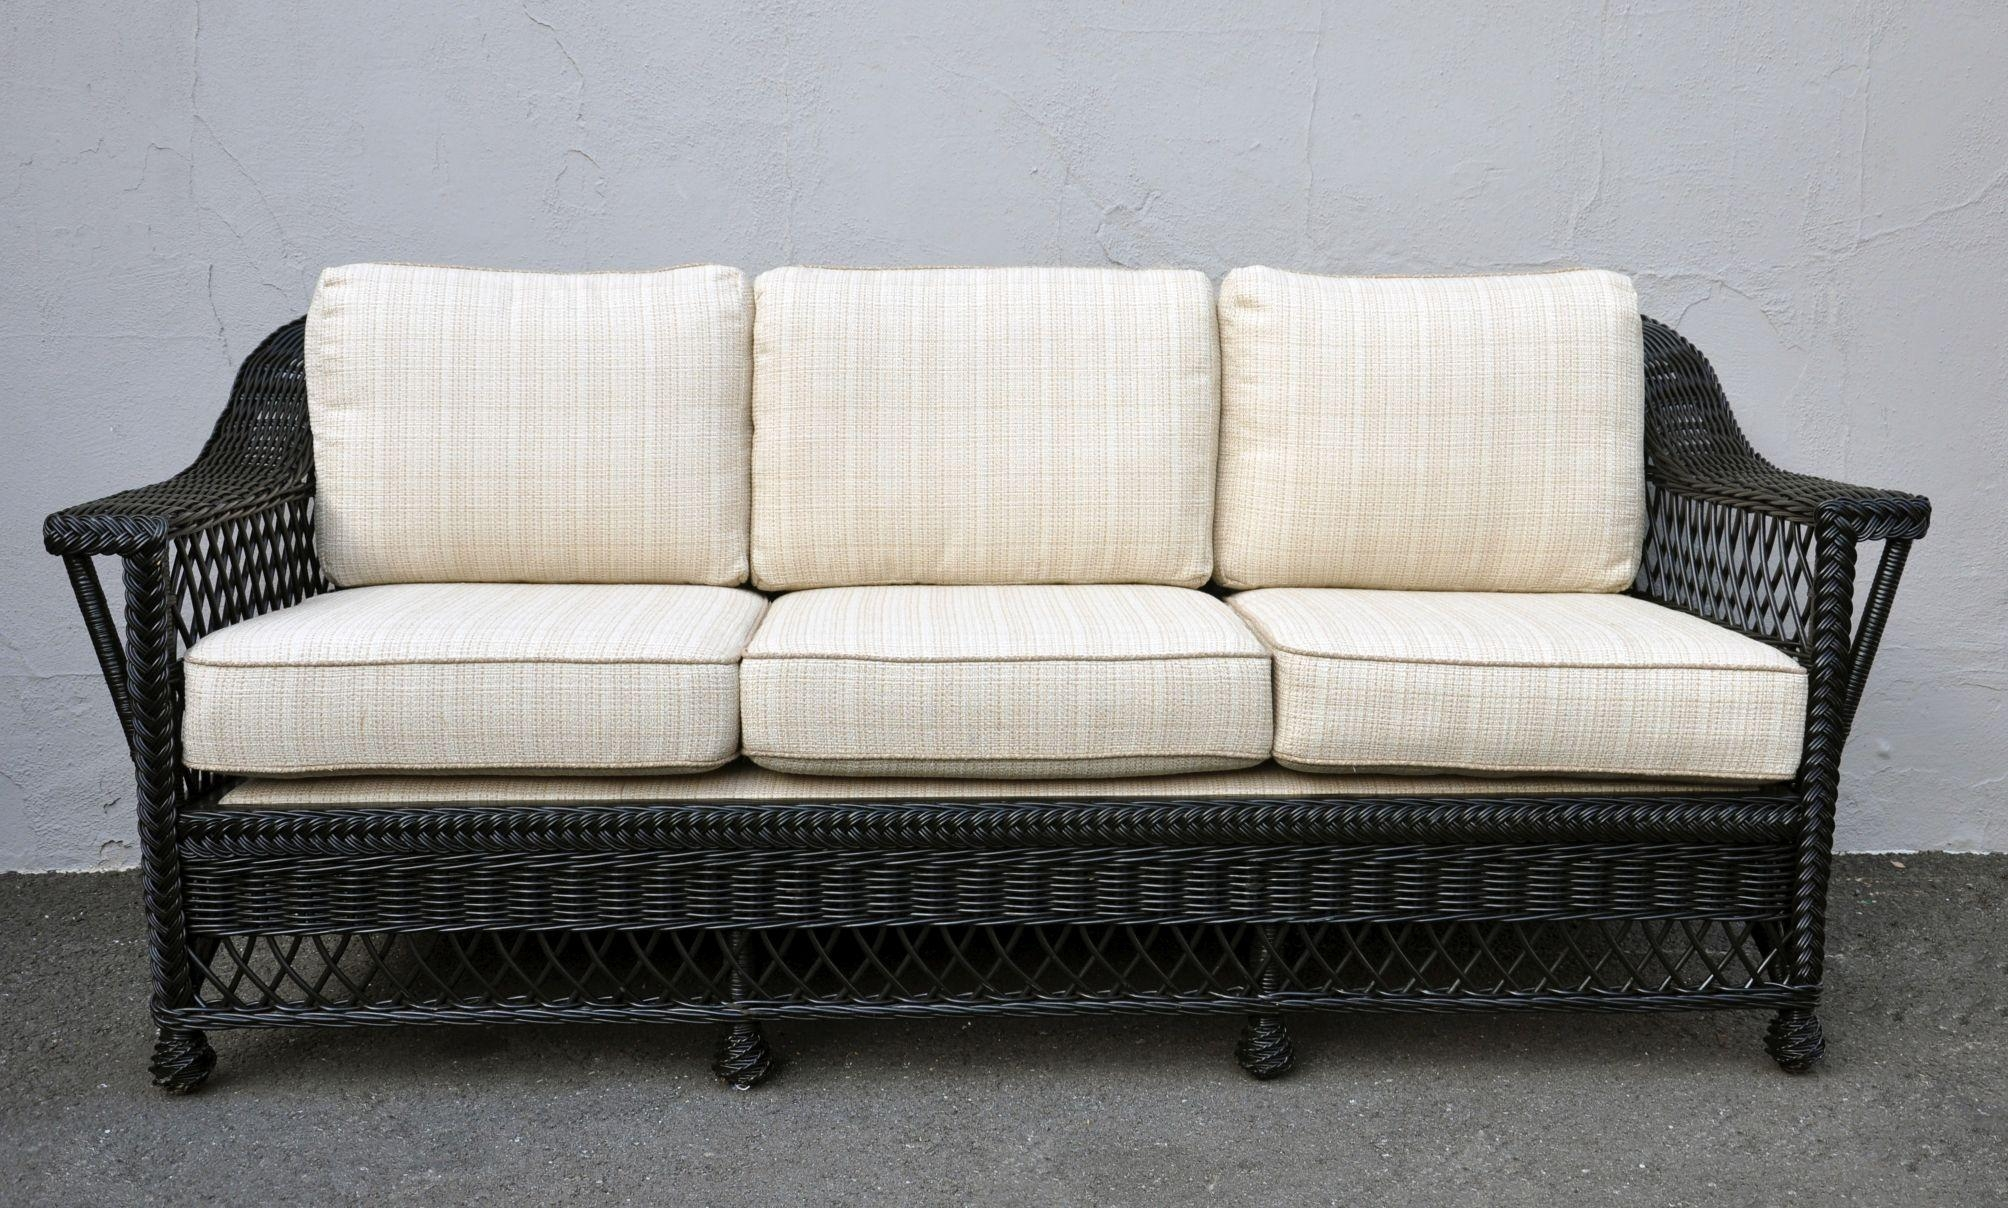 Bar Harbor Black Painted Rattan Sofa – Mecox Gardens Within Black Wicker Sofas (View 10 of 20)